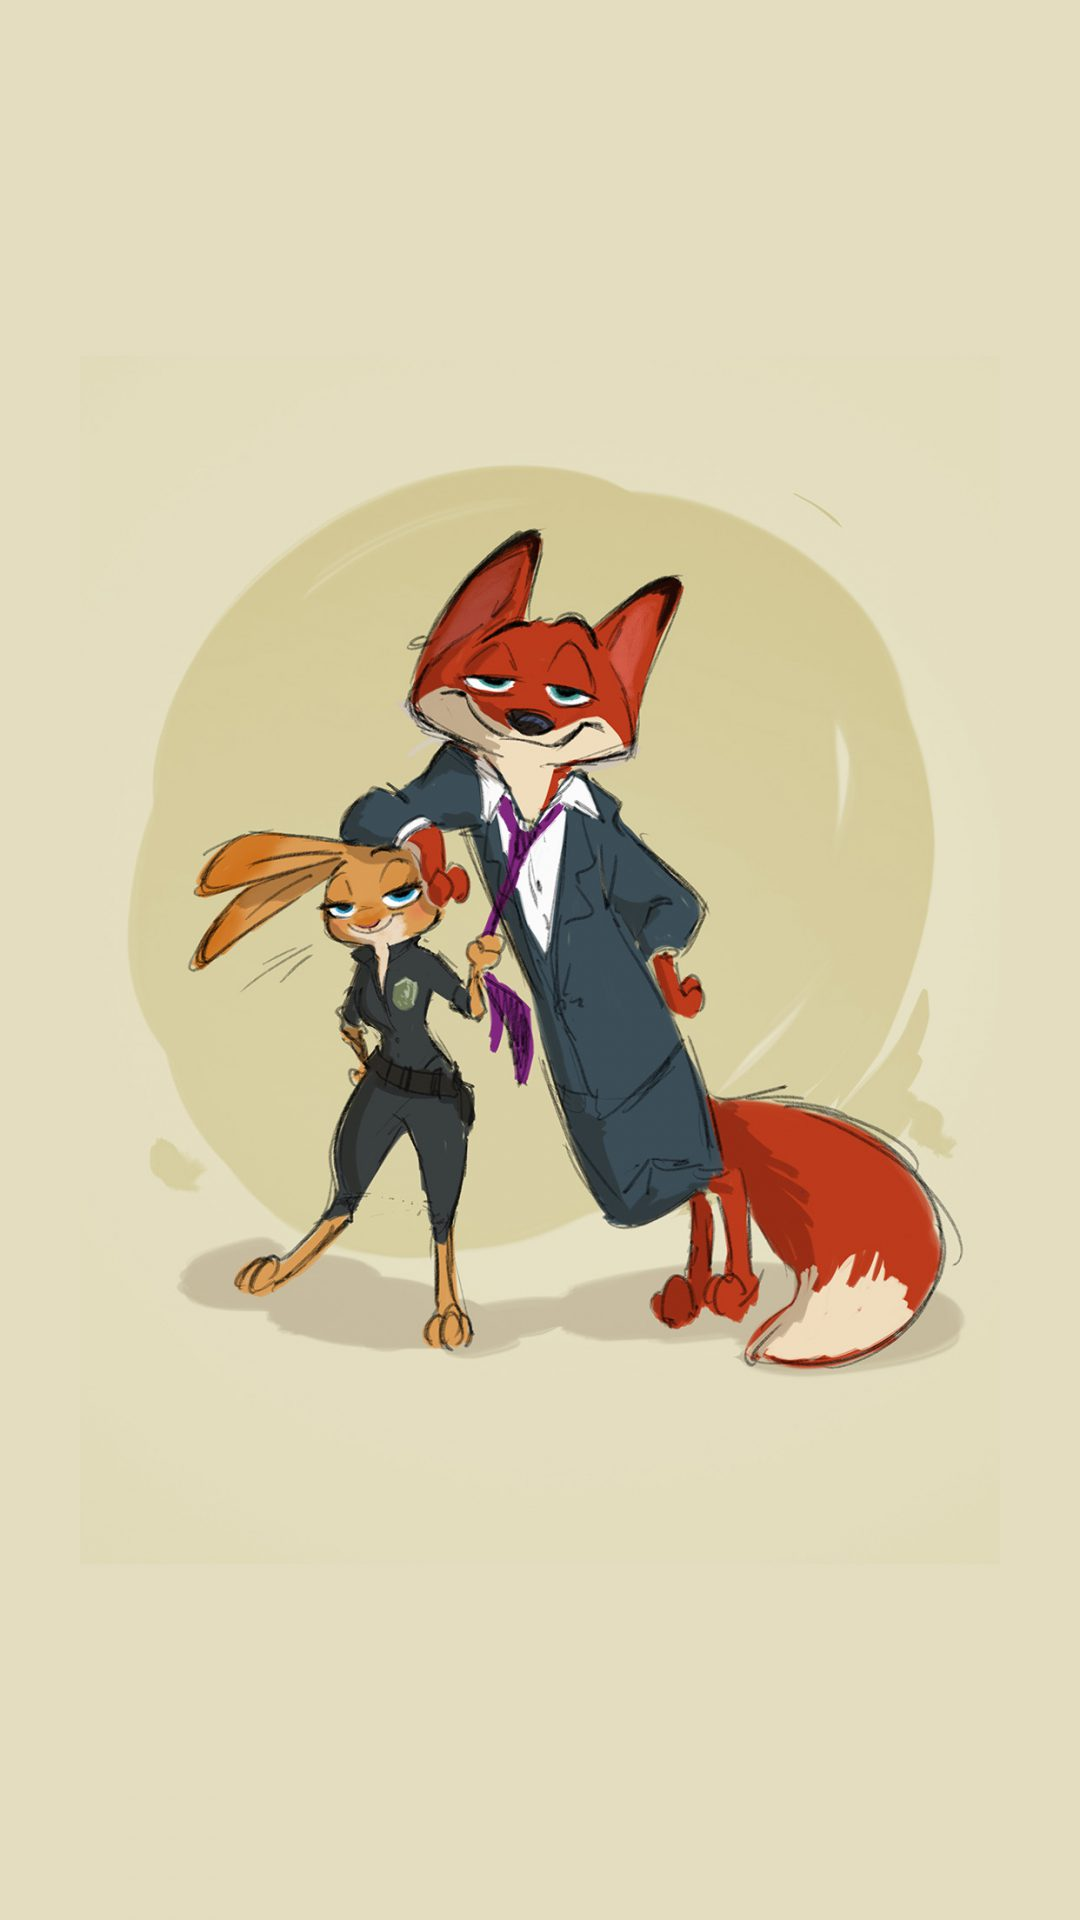 ZOOTOPIA – Character Concept Art of Judy Hopps and Nick Wilde by Director Byron Howard. ©2015 Disney. All Rights Reserved.